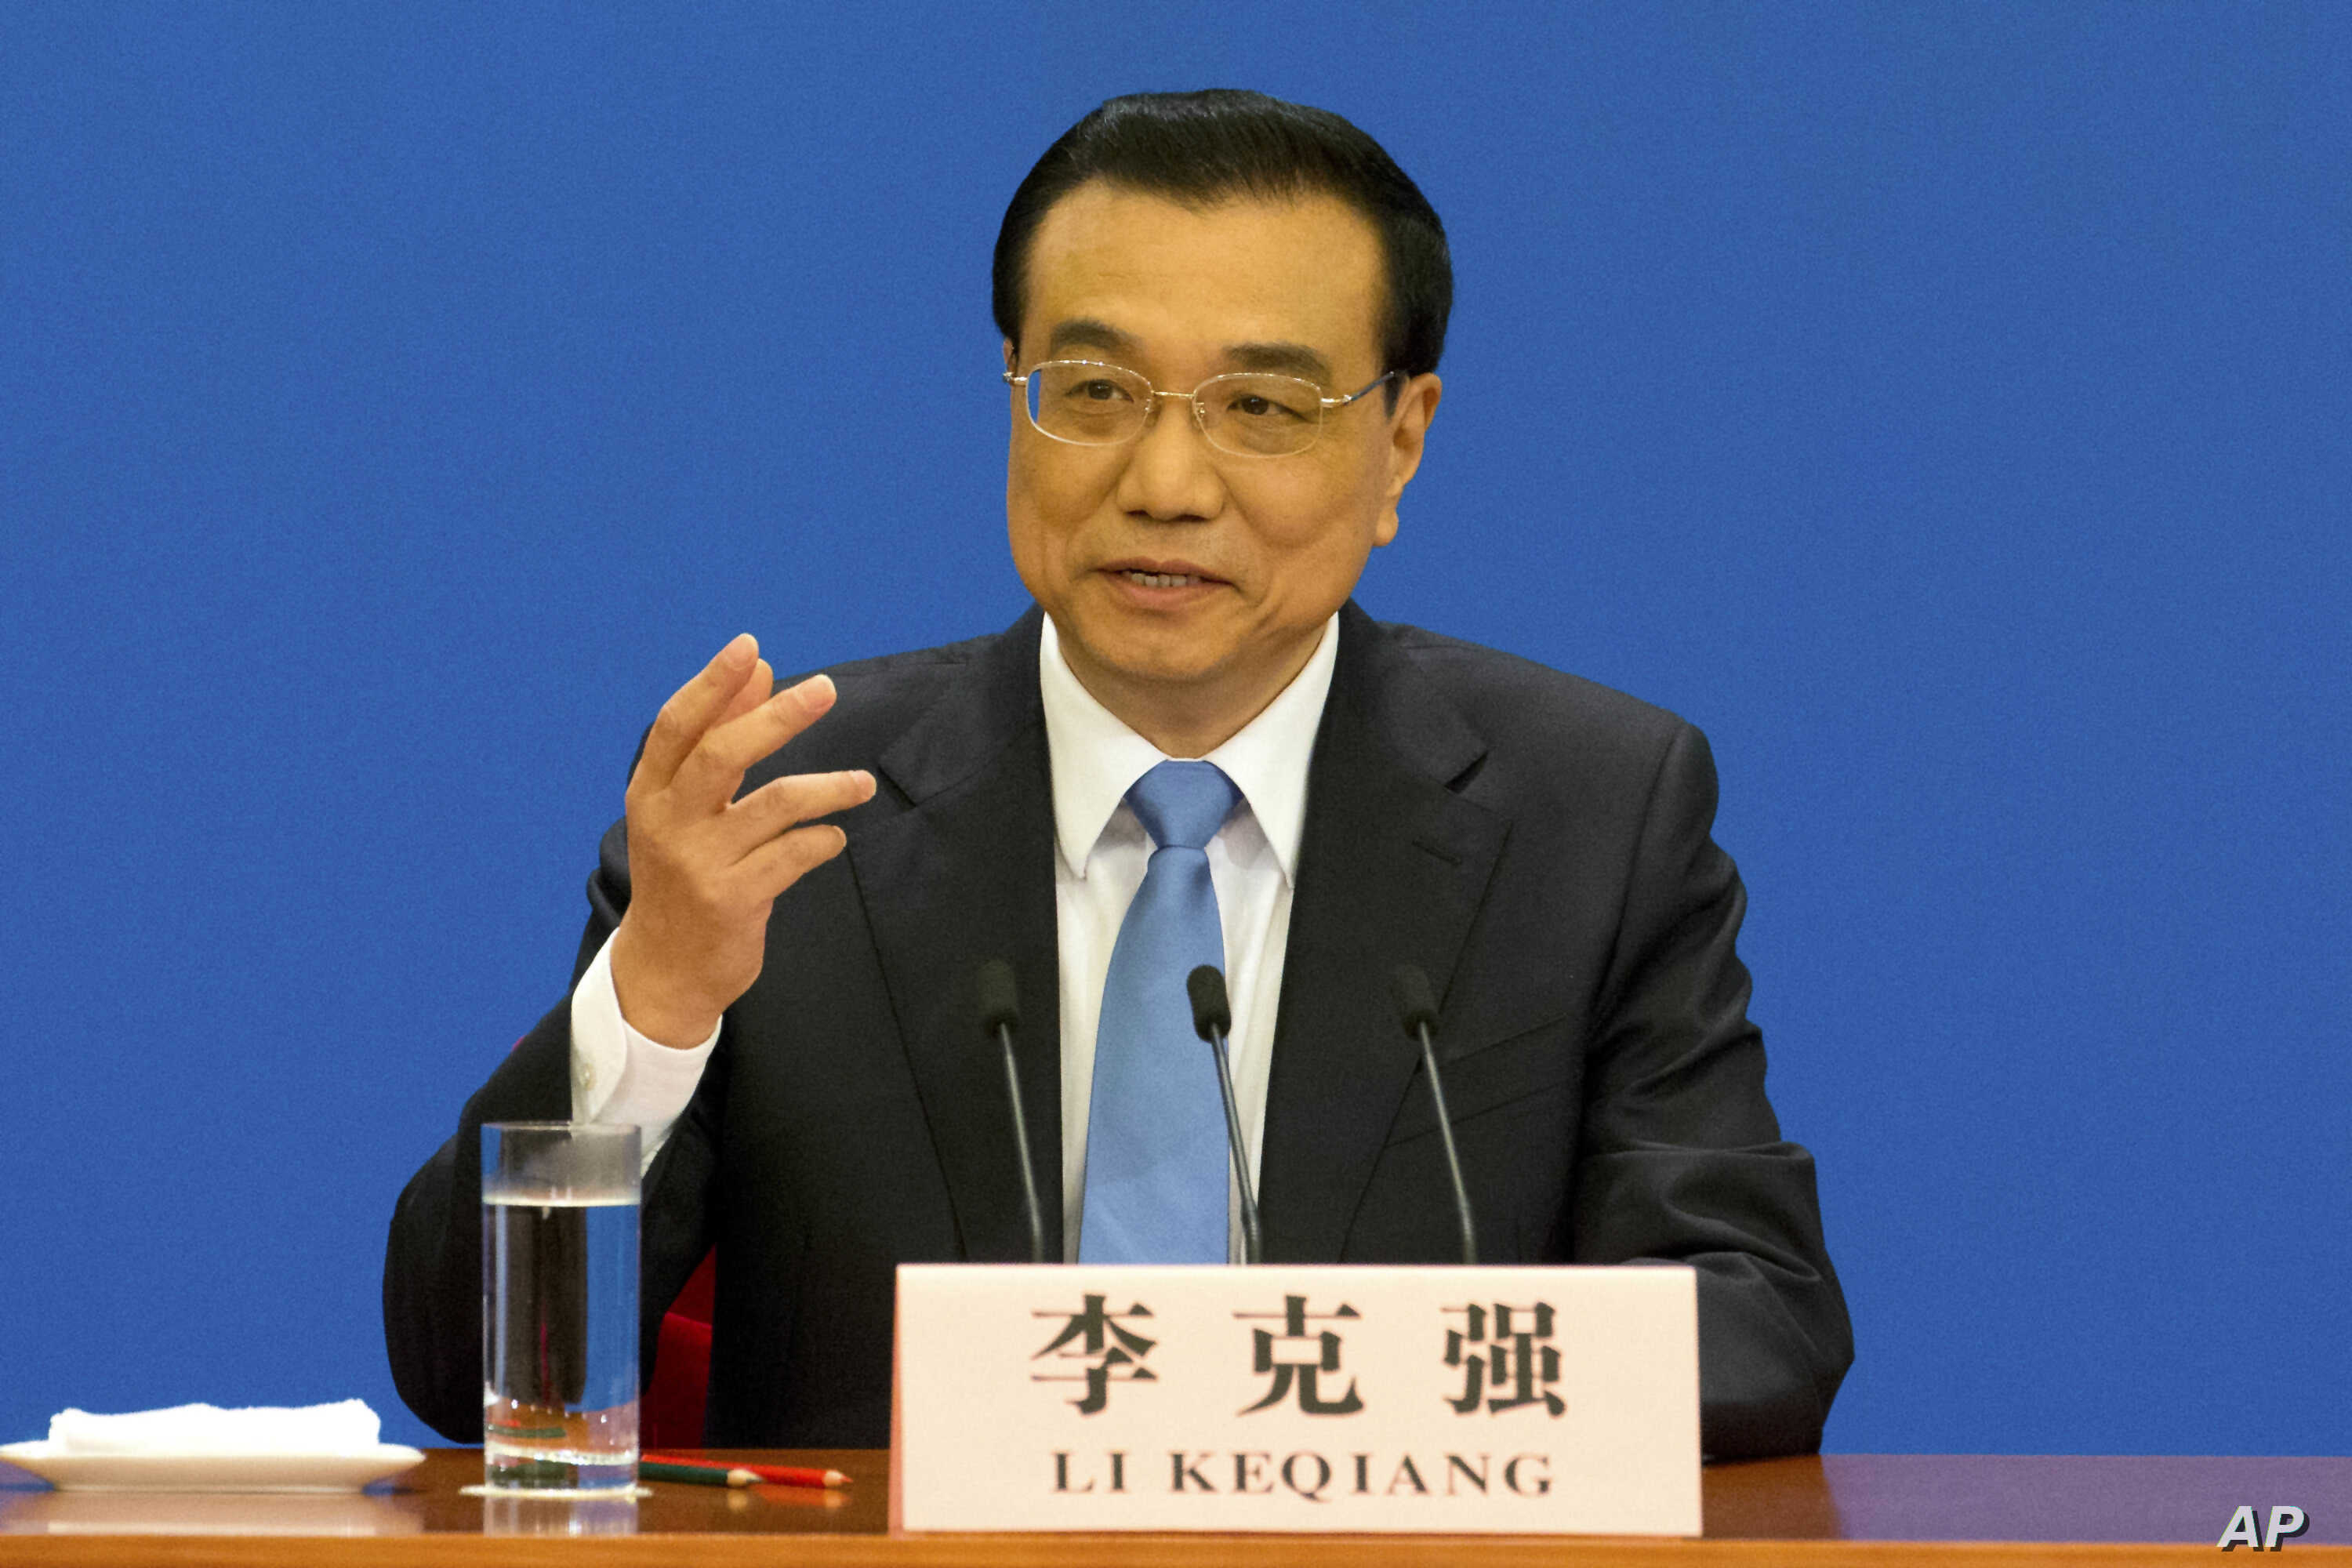 Chinese Premier Li Keqiang speaks during a press conference held at the conclusion of the annual meeting of China's National People's Congress at the Great Hall of the People in Beijing, March 15, 2017.